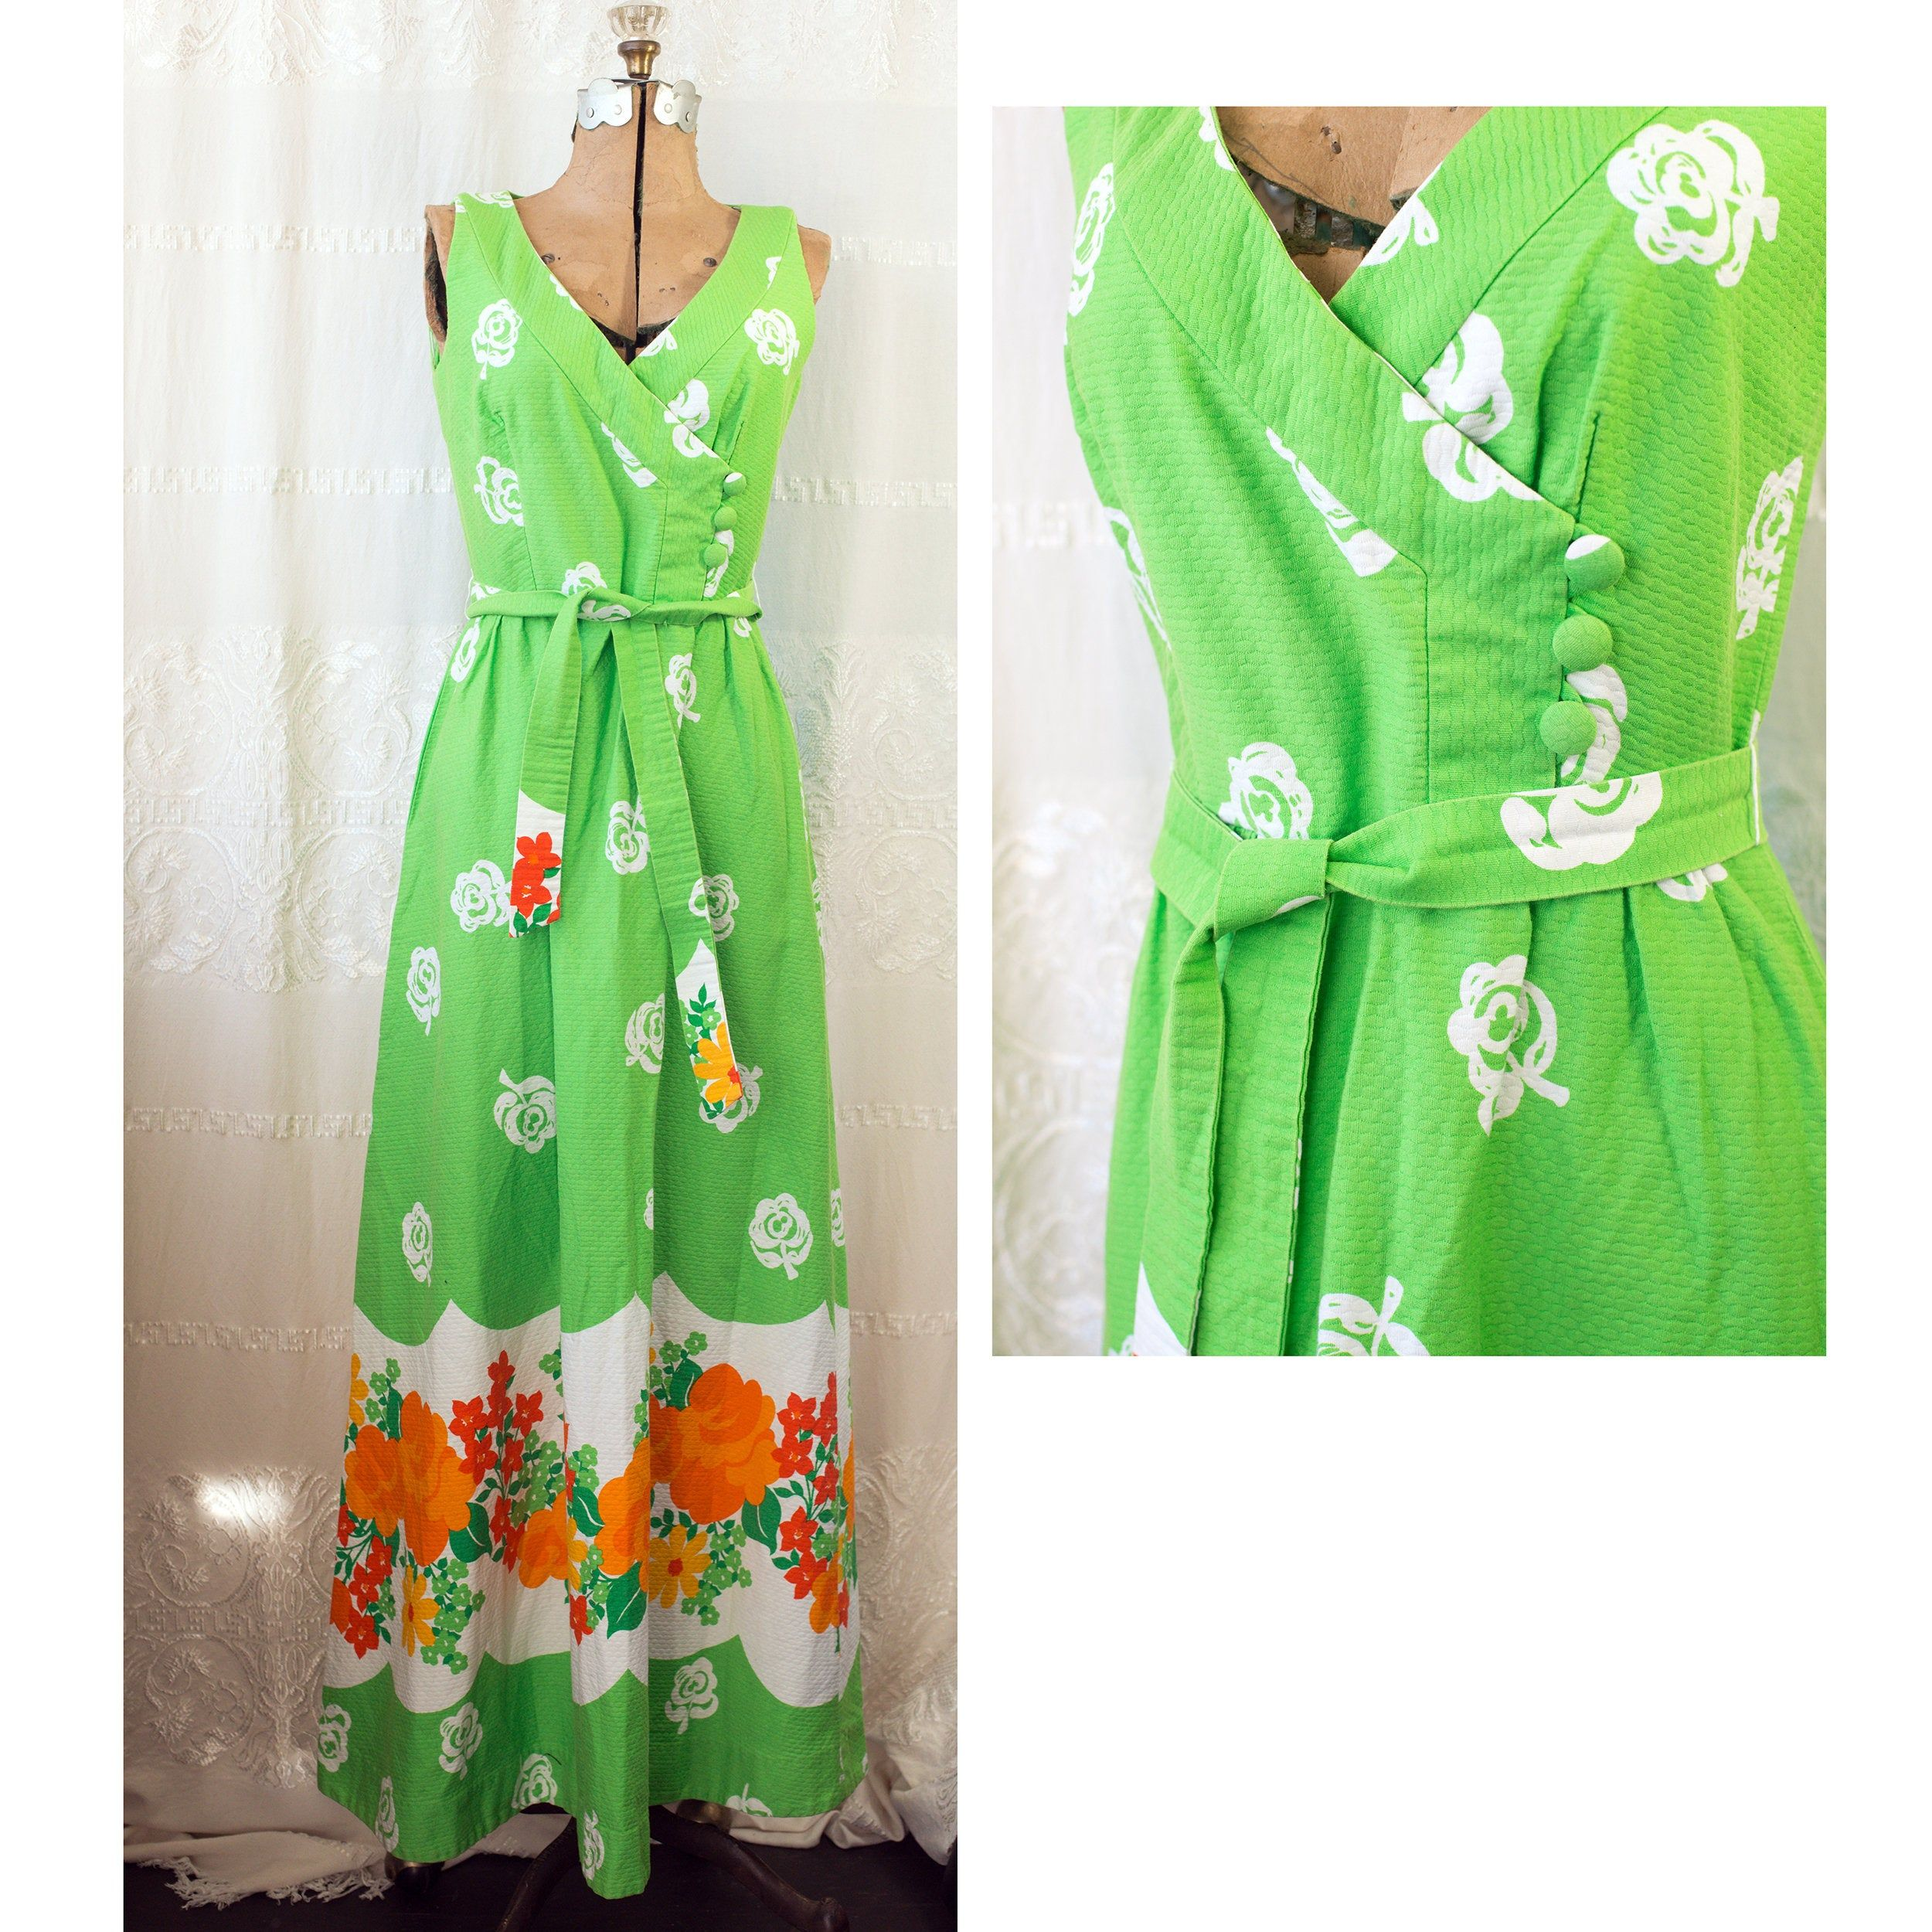 1960's Or 70's Hawaiian Cotton Floral Maxi Dress With Tie